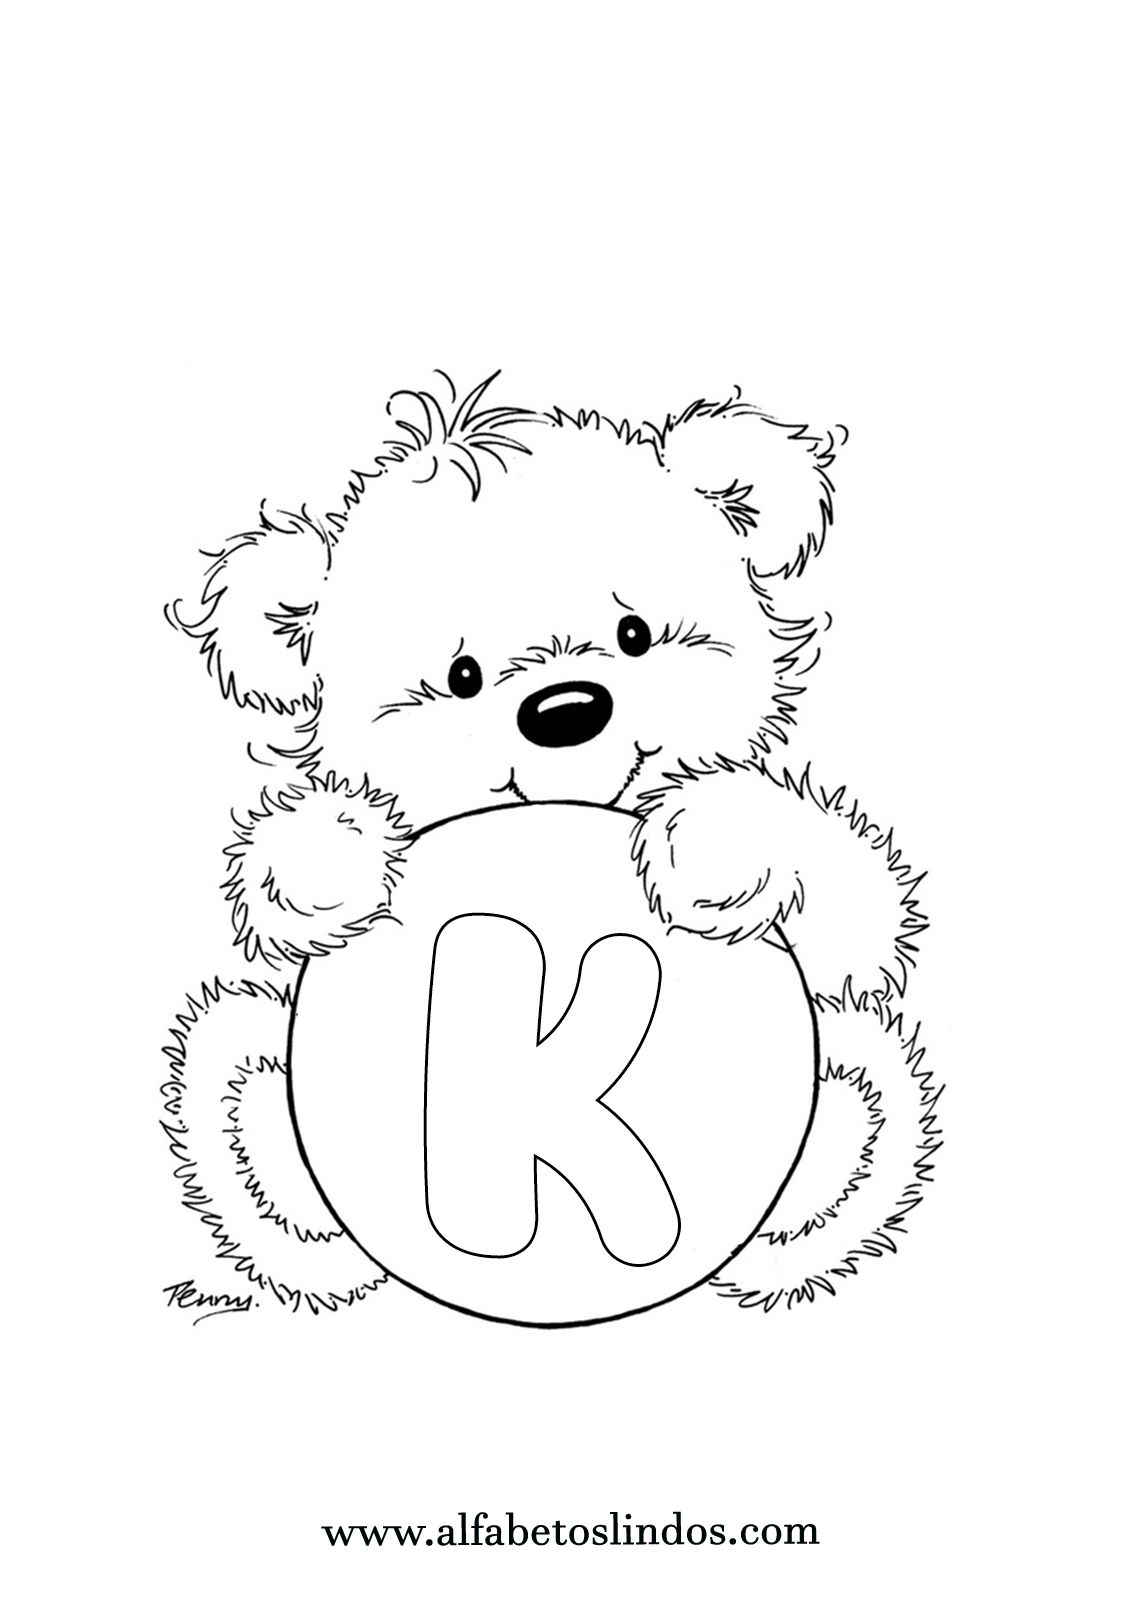 17+ Cute brown bear coloring pages ideas